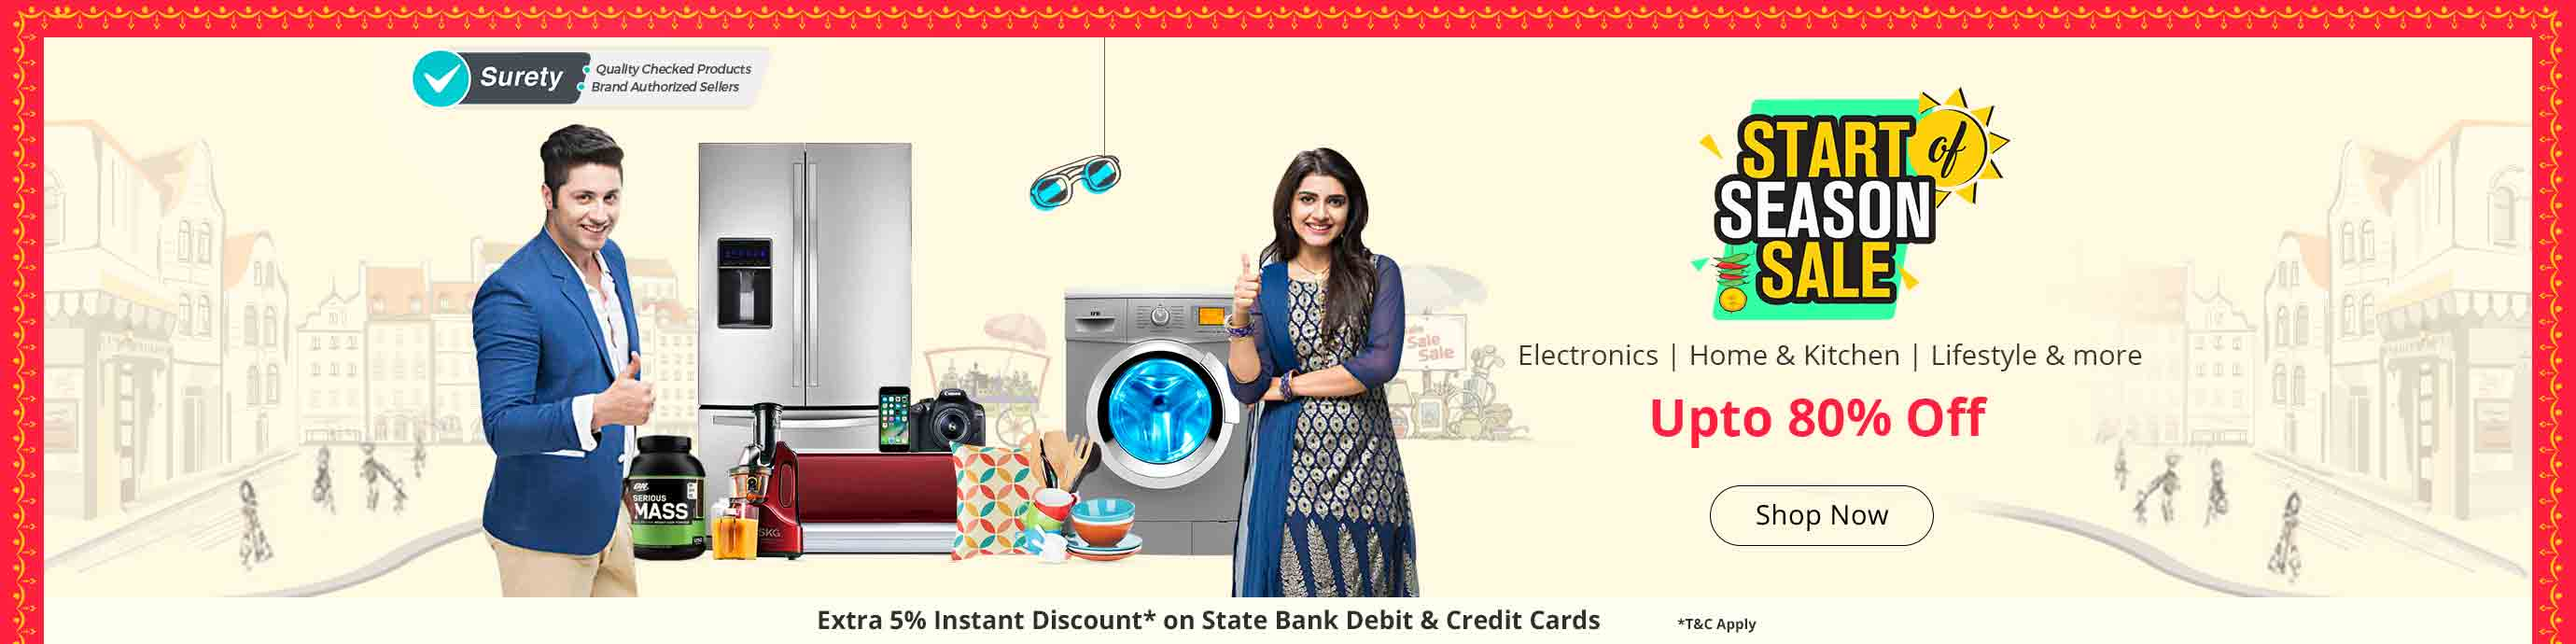 Shopclues - Start Season Sale Upto 80% Discount + Wallet Cashback